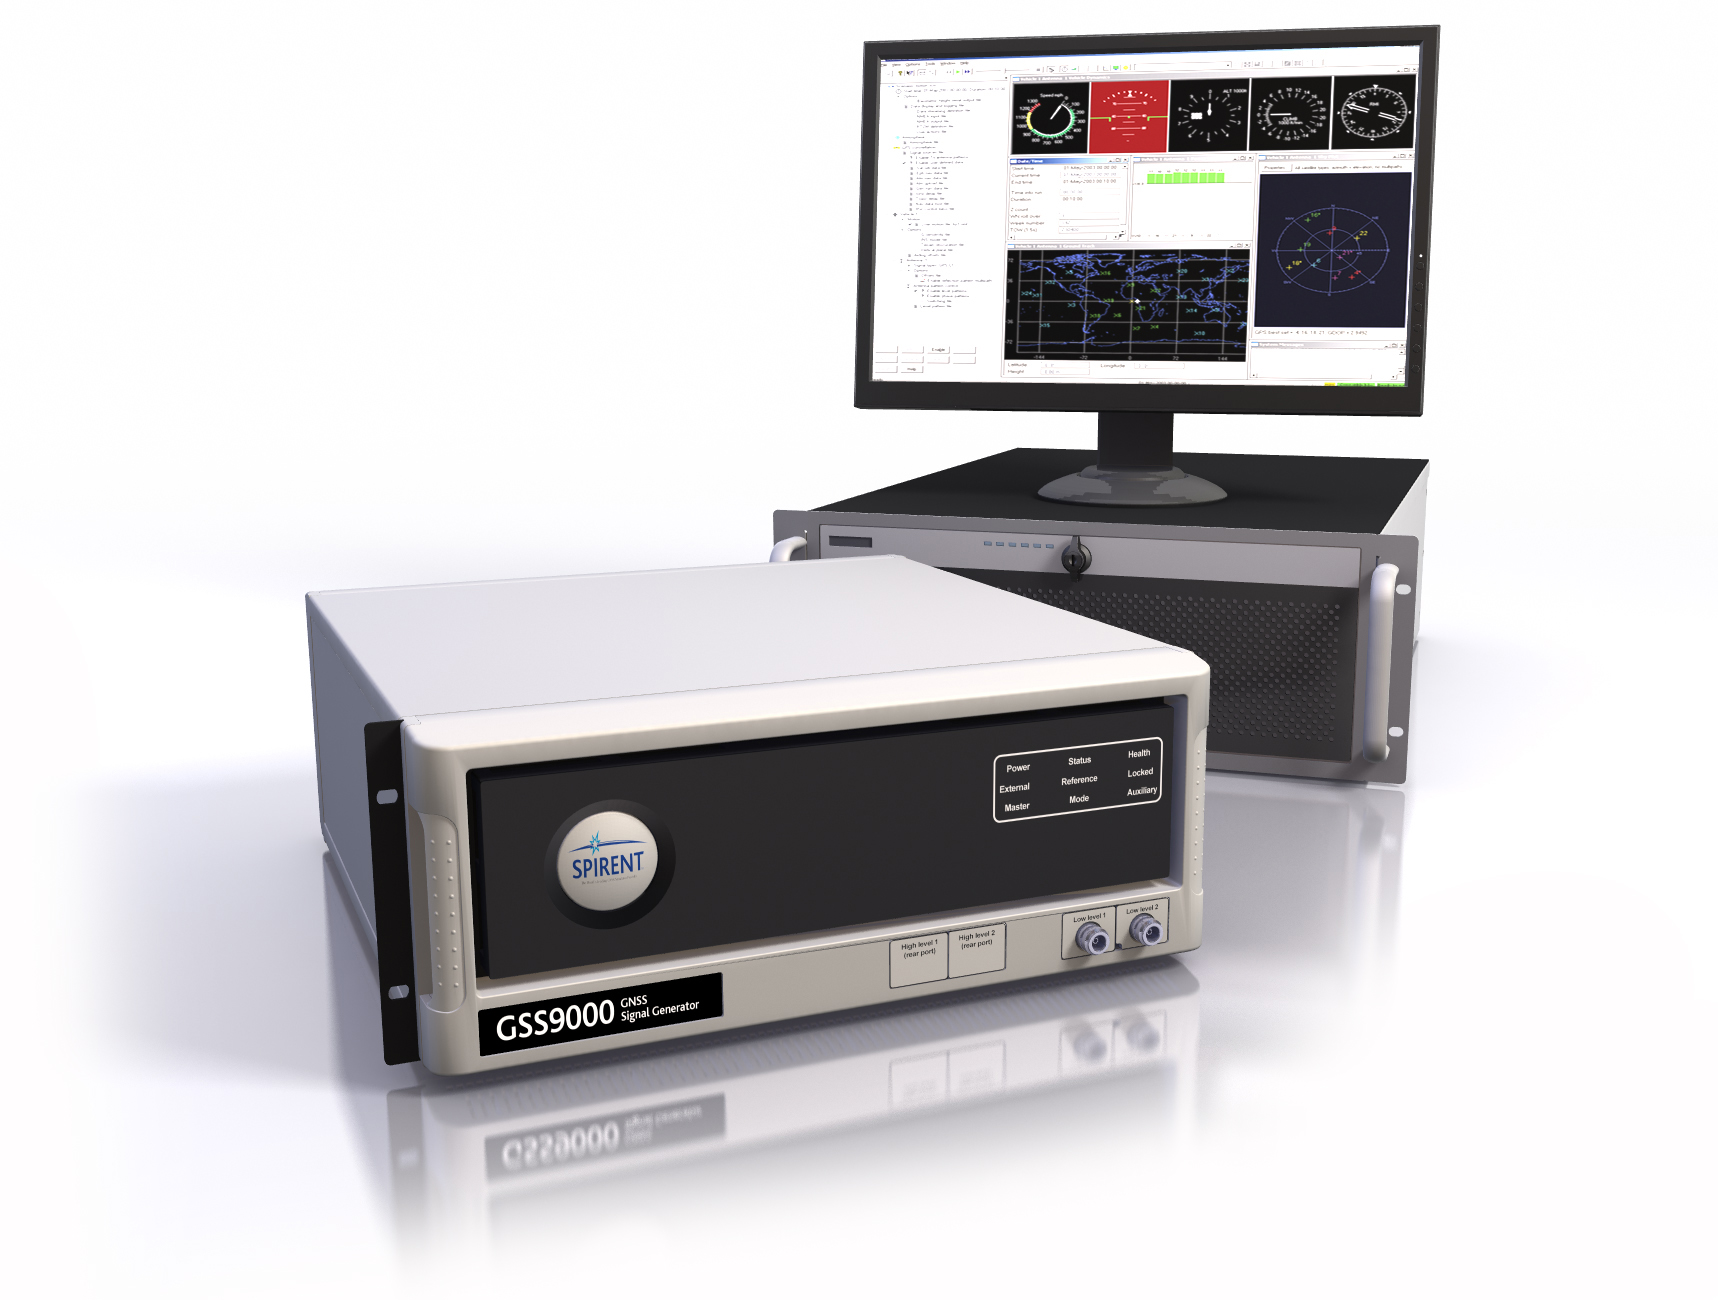 Spirent's SimMNSA Granted Security Approval by the Global Positioning System Directorate